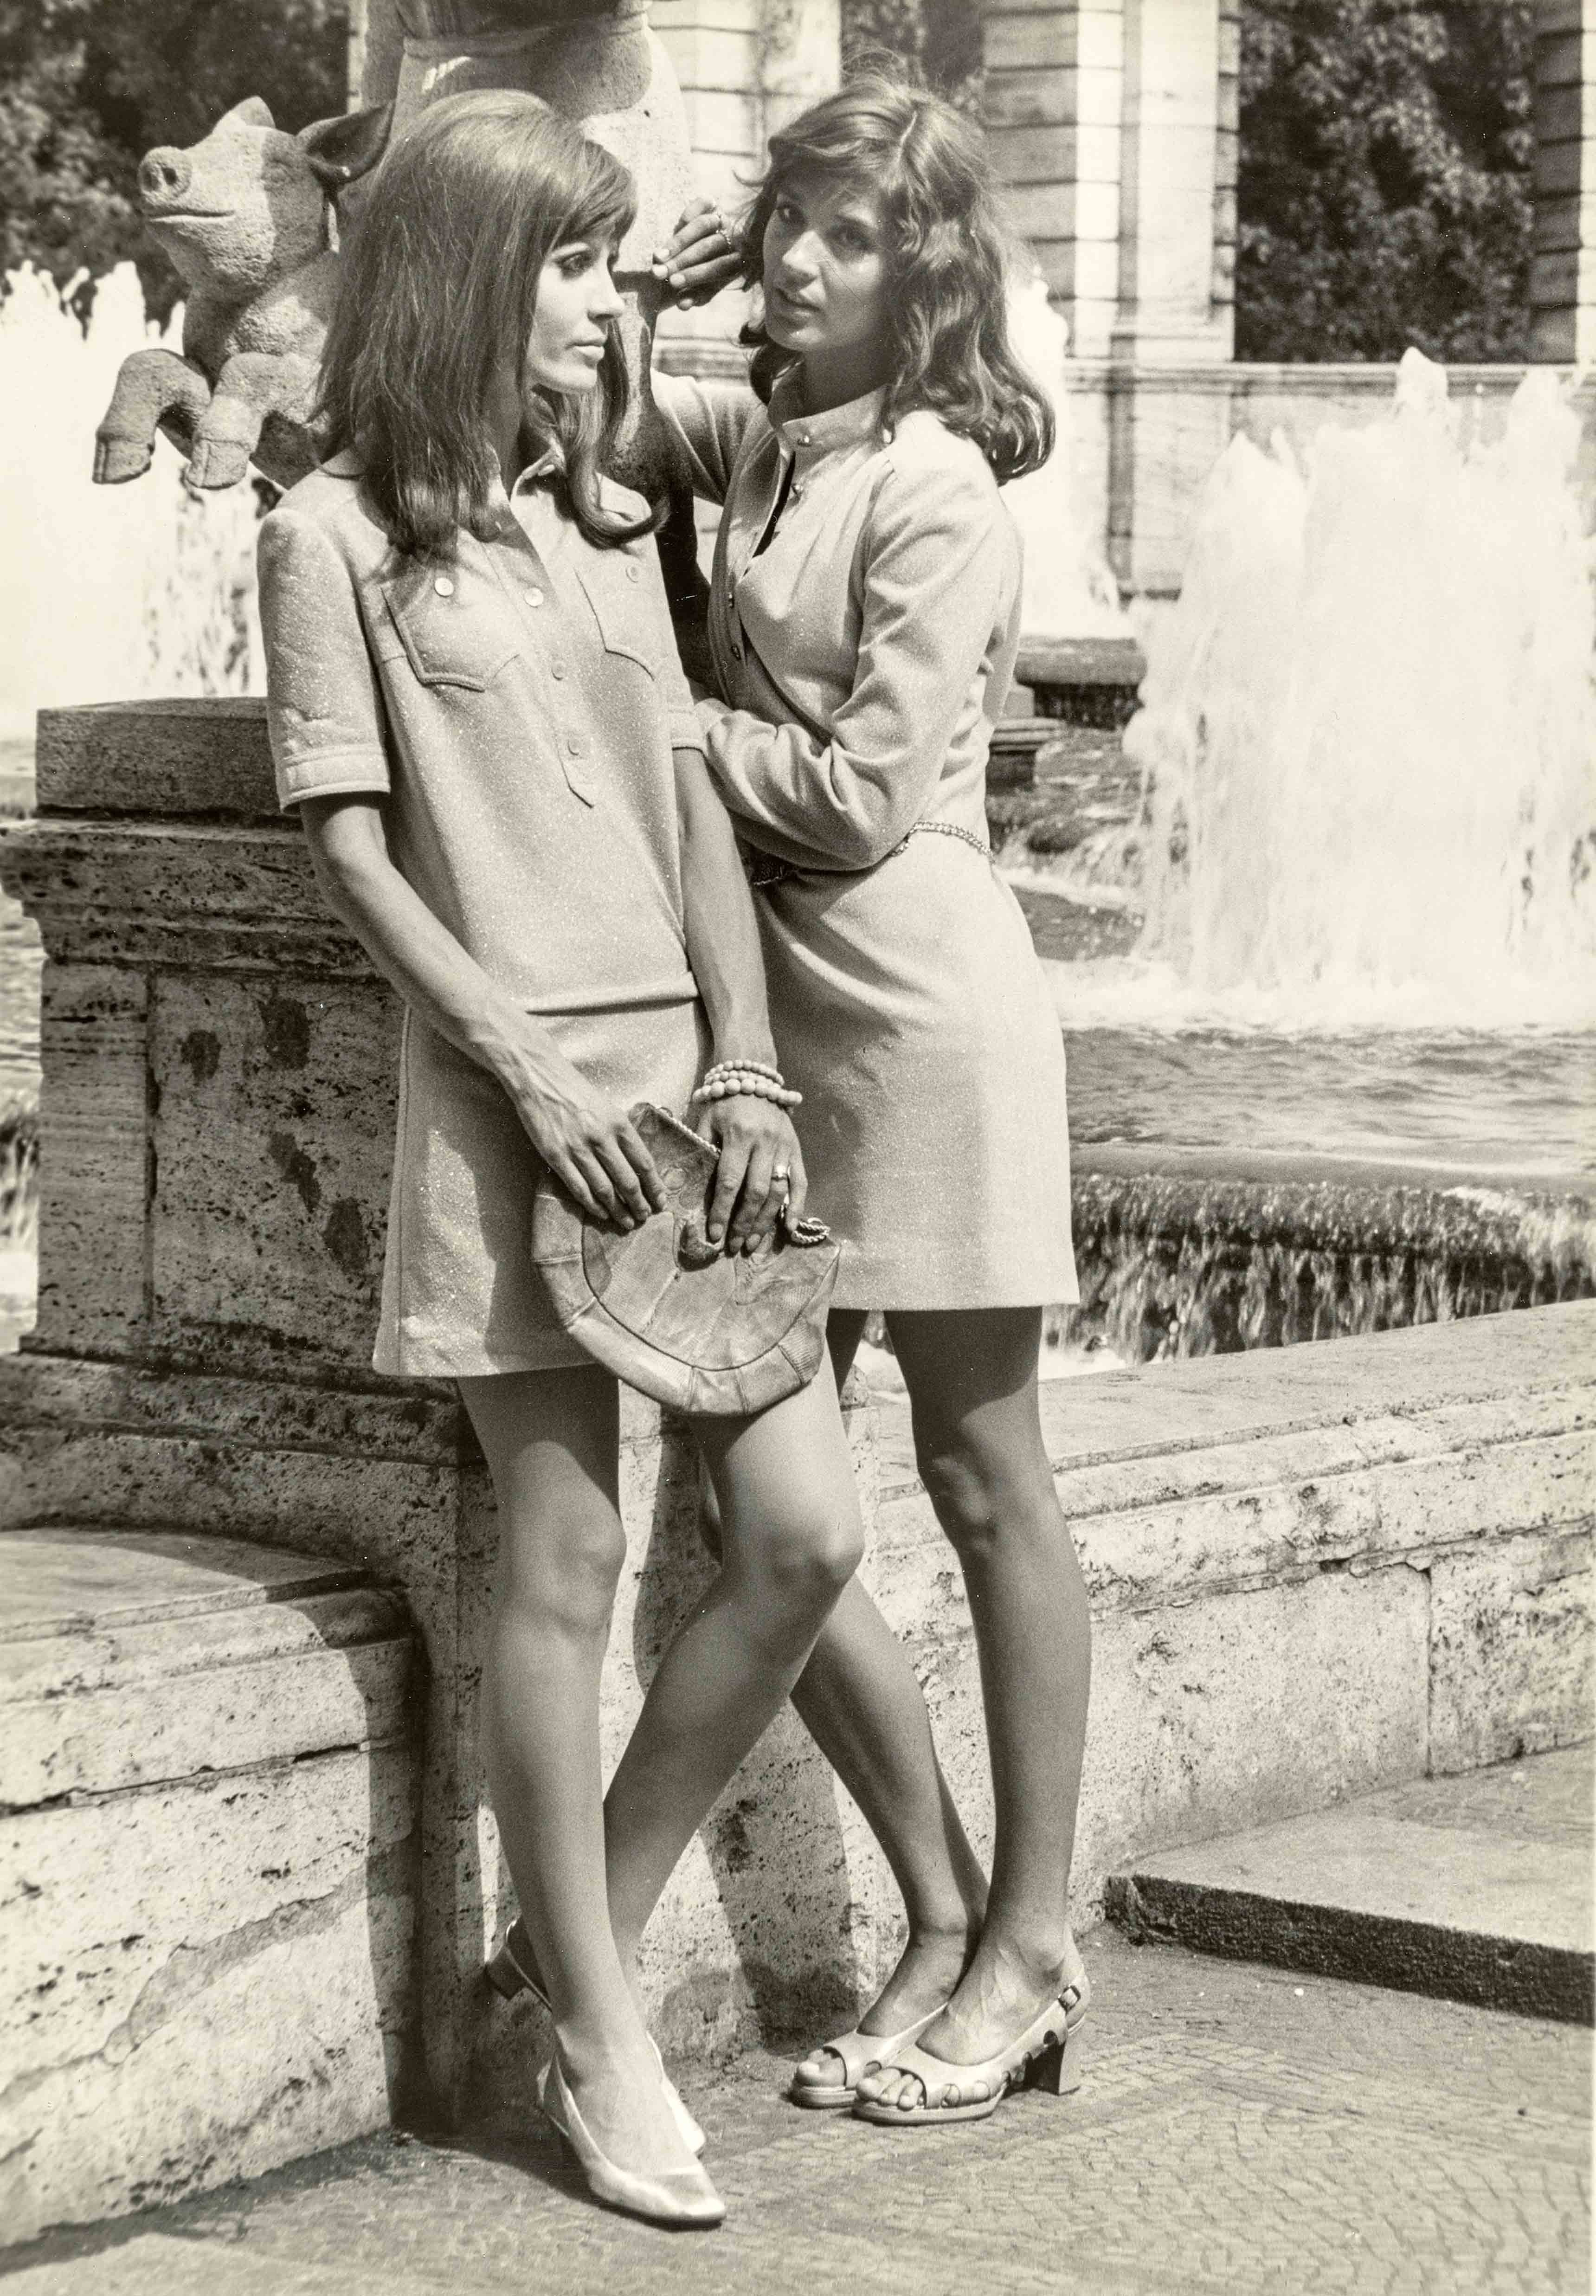 Shirt dresses, synthetic knitwear with lurex effect | vintage print | 15,7 x 11,8 in  | models: German Fashion Institute | 'Sibylle', issue 6, 1970  Galerie Berinson, Berlin